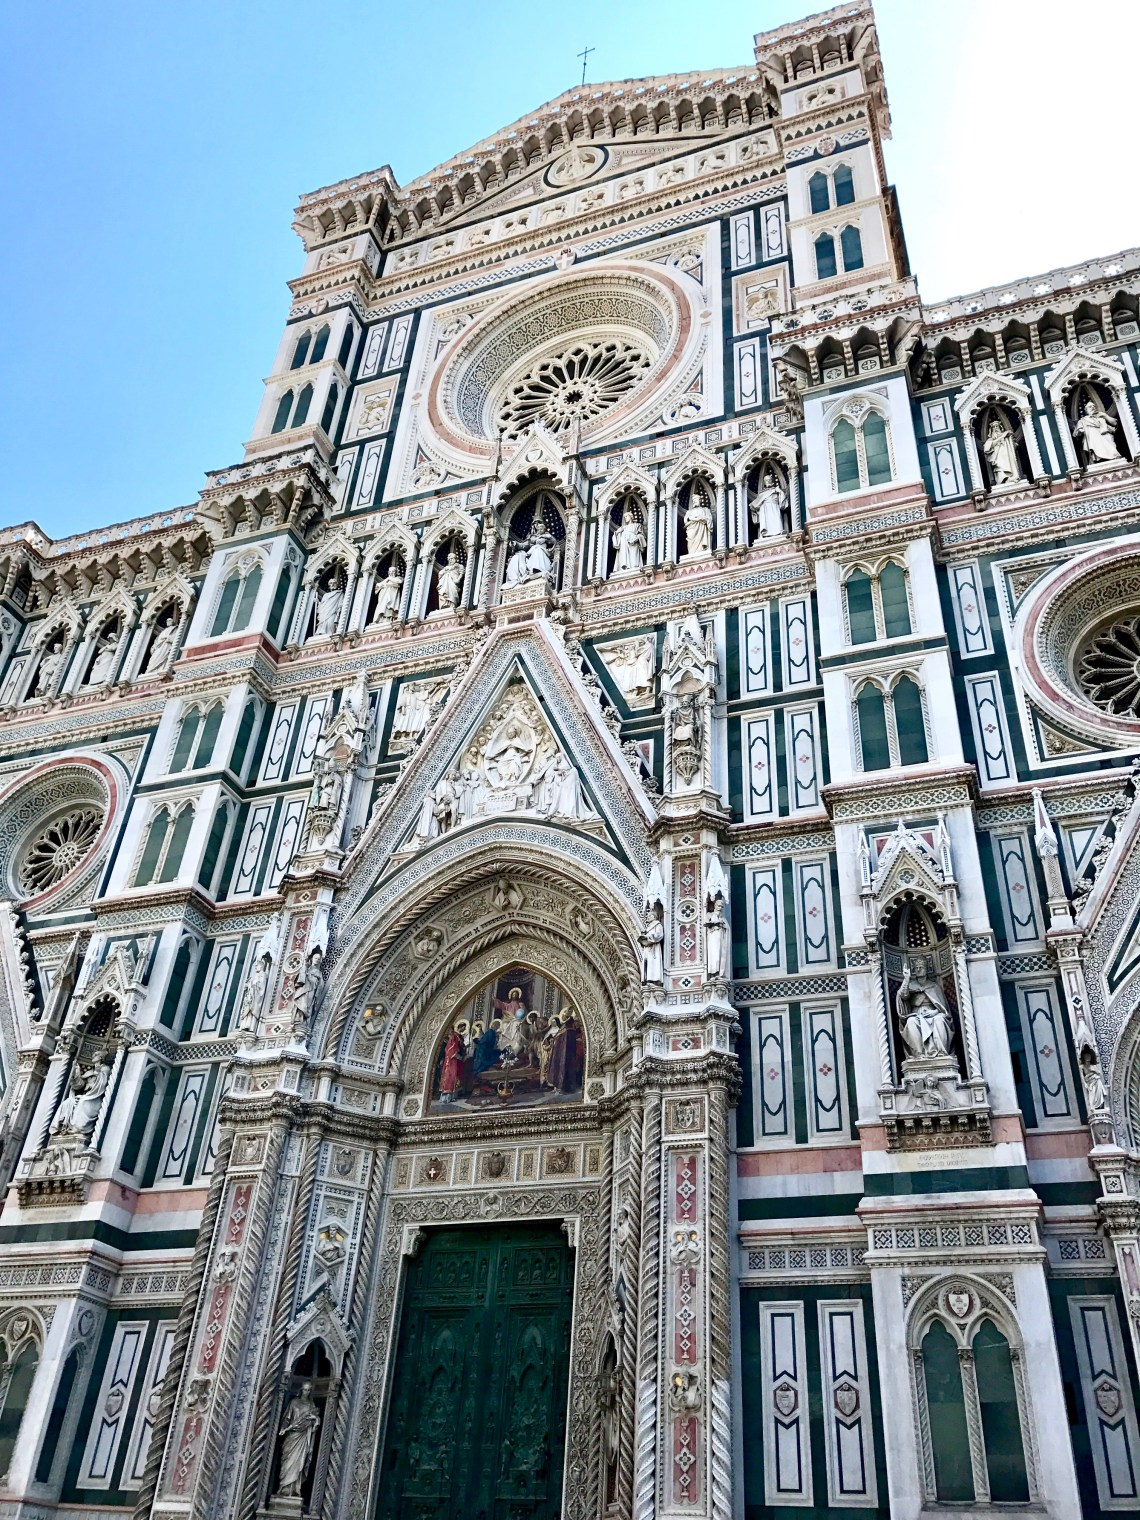 Front of the Duomo church